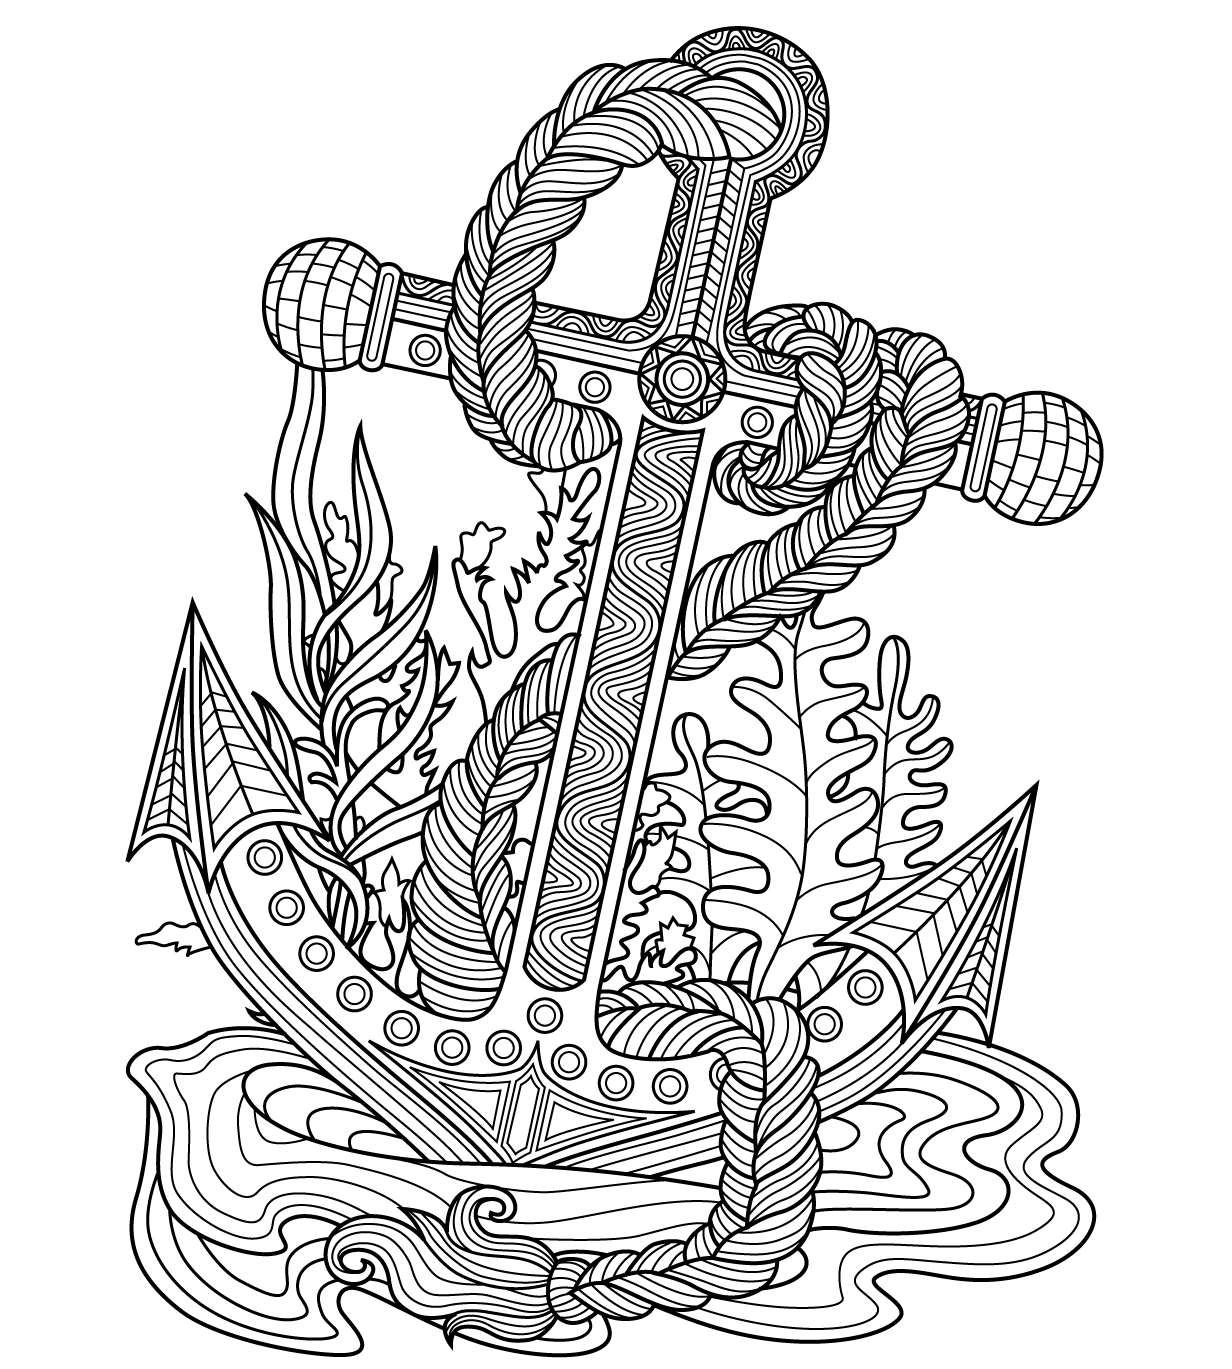 Coloring pages for adults app ~ Anchor Sea coloring page | Colorish : coloring book app ...